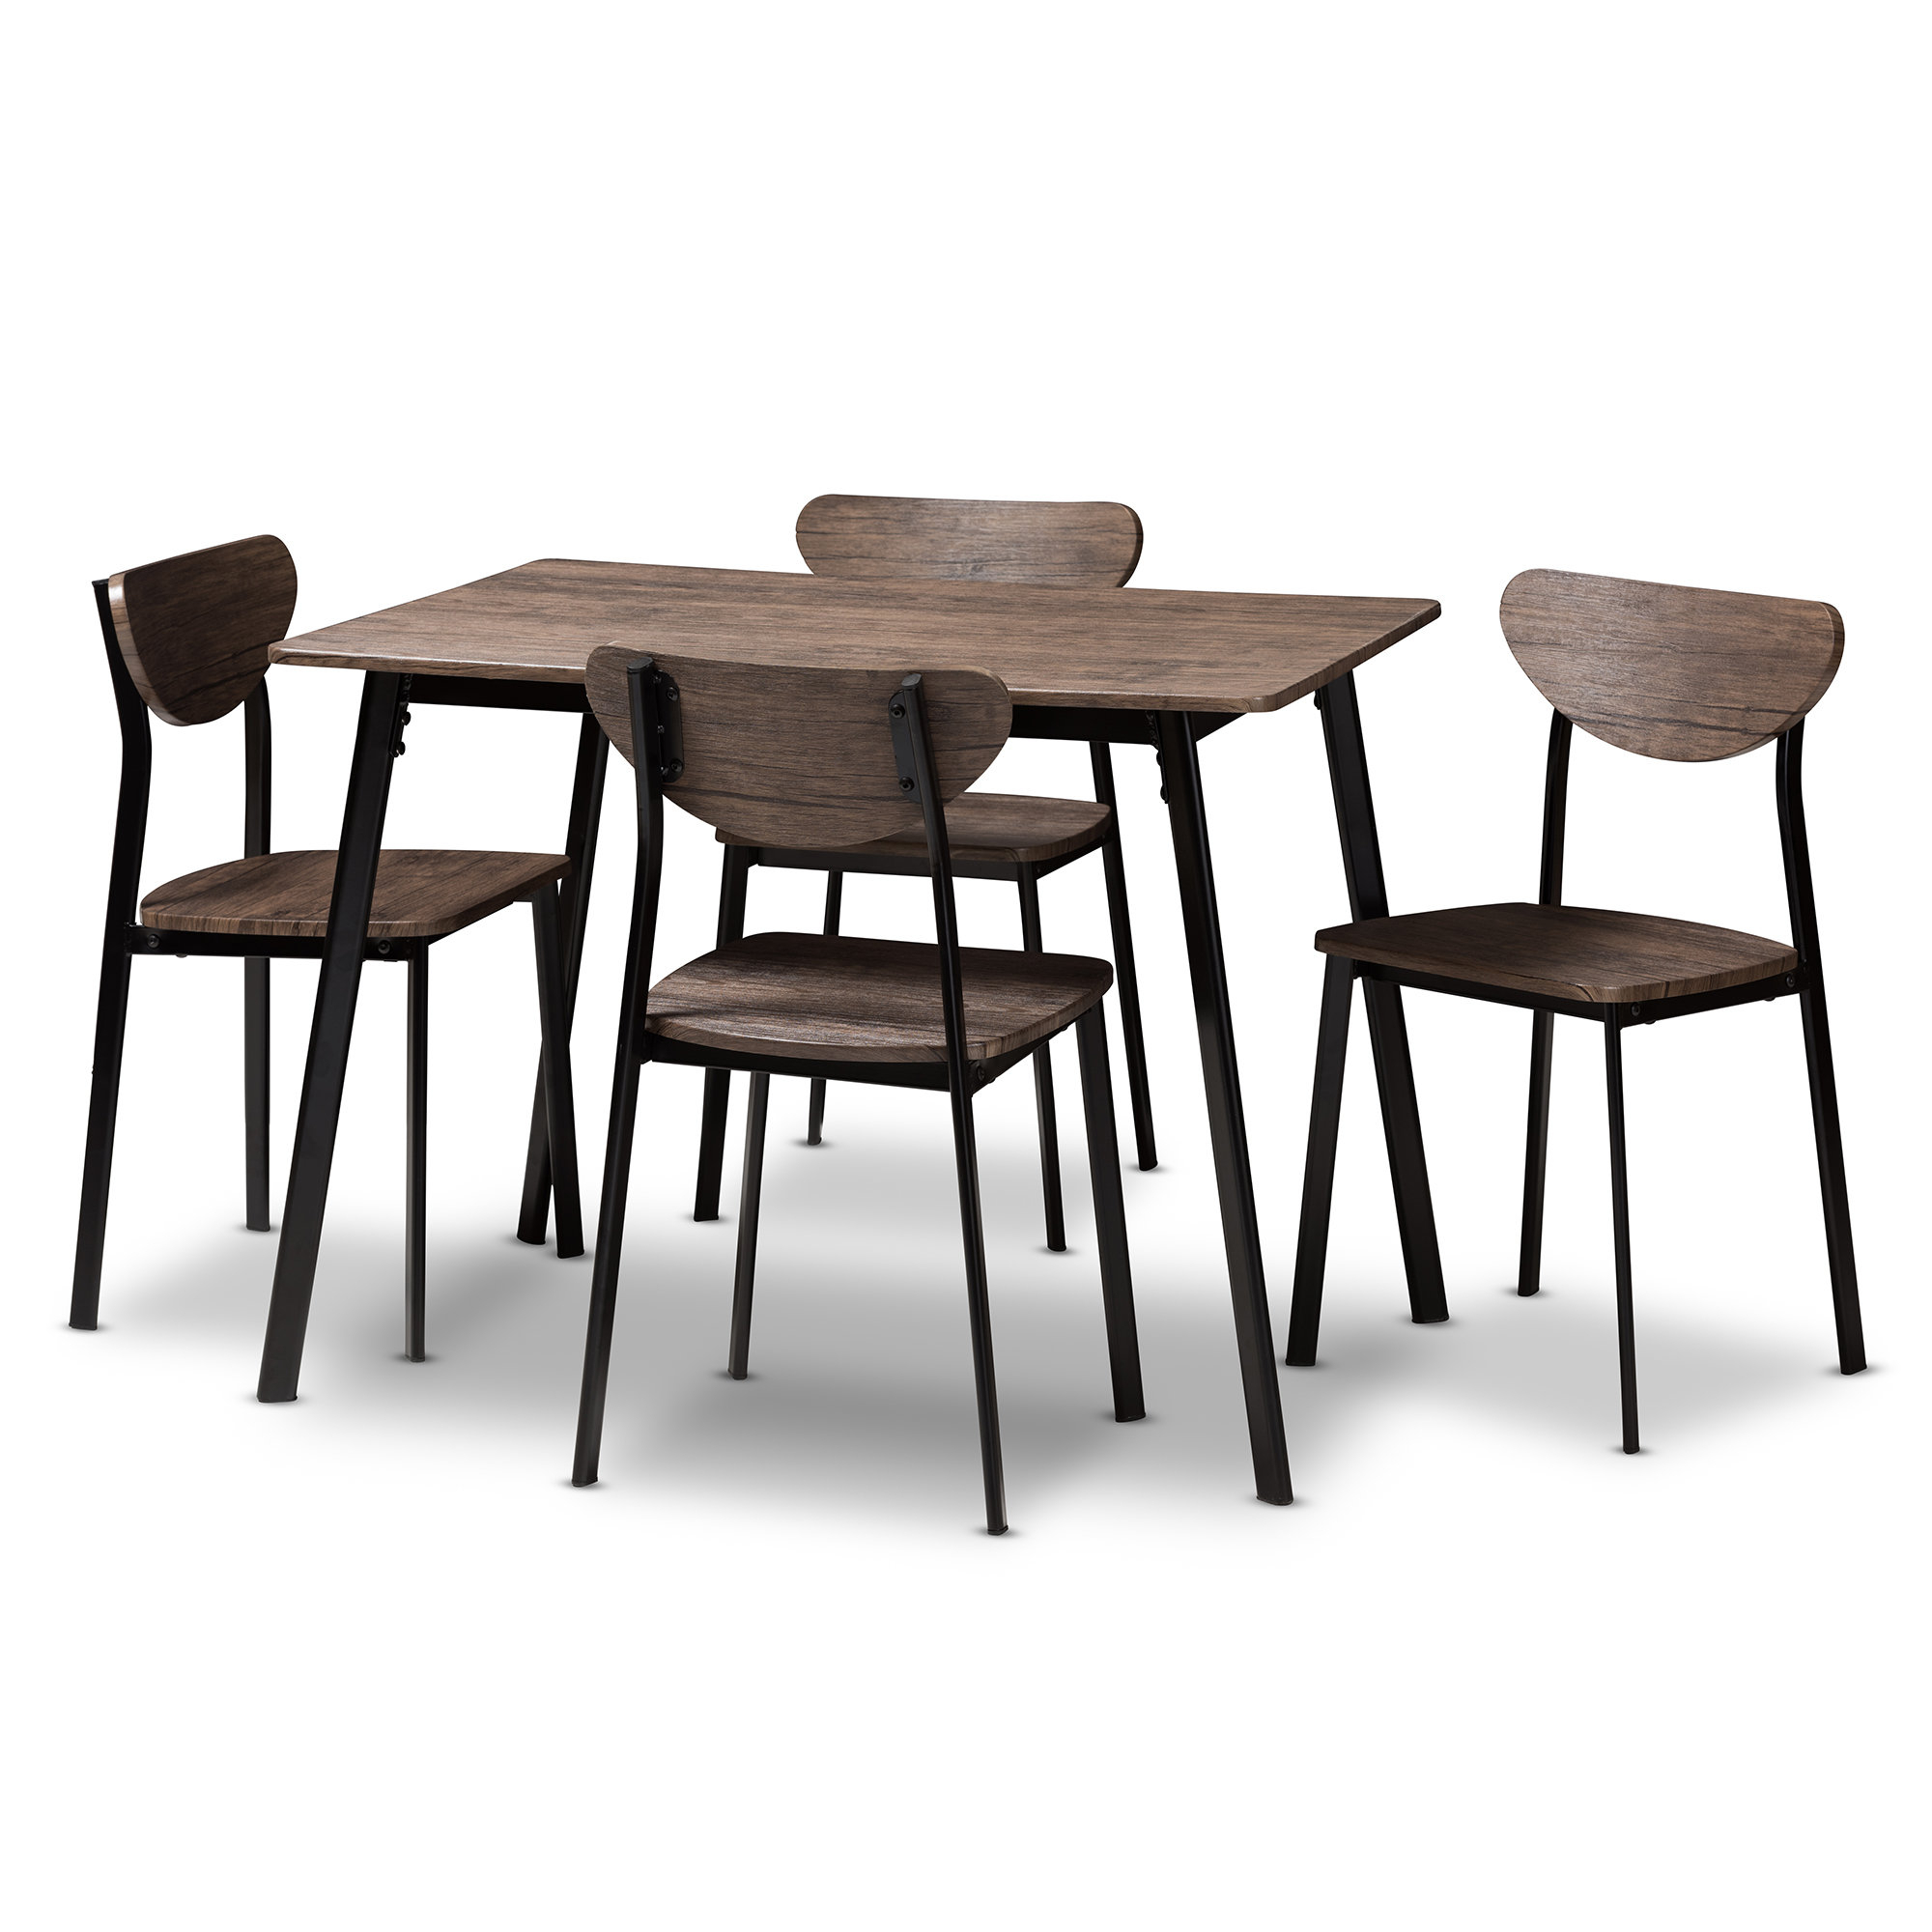 Tejeda 5 Piece Dining Set Regarding Most Current Telauges 5 Piece Dining Sets (Photo 15 of 20)